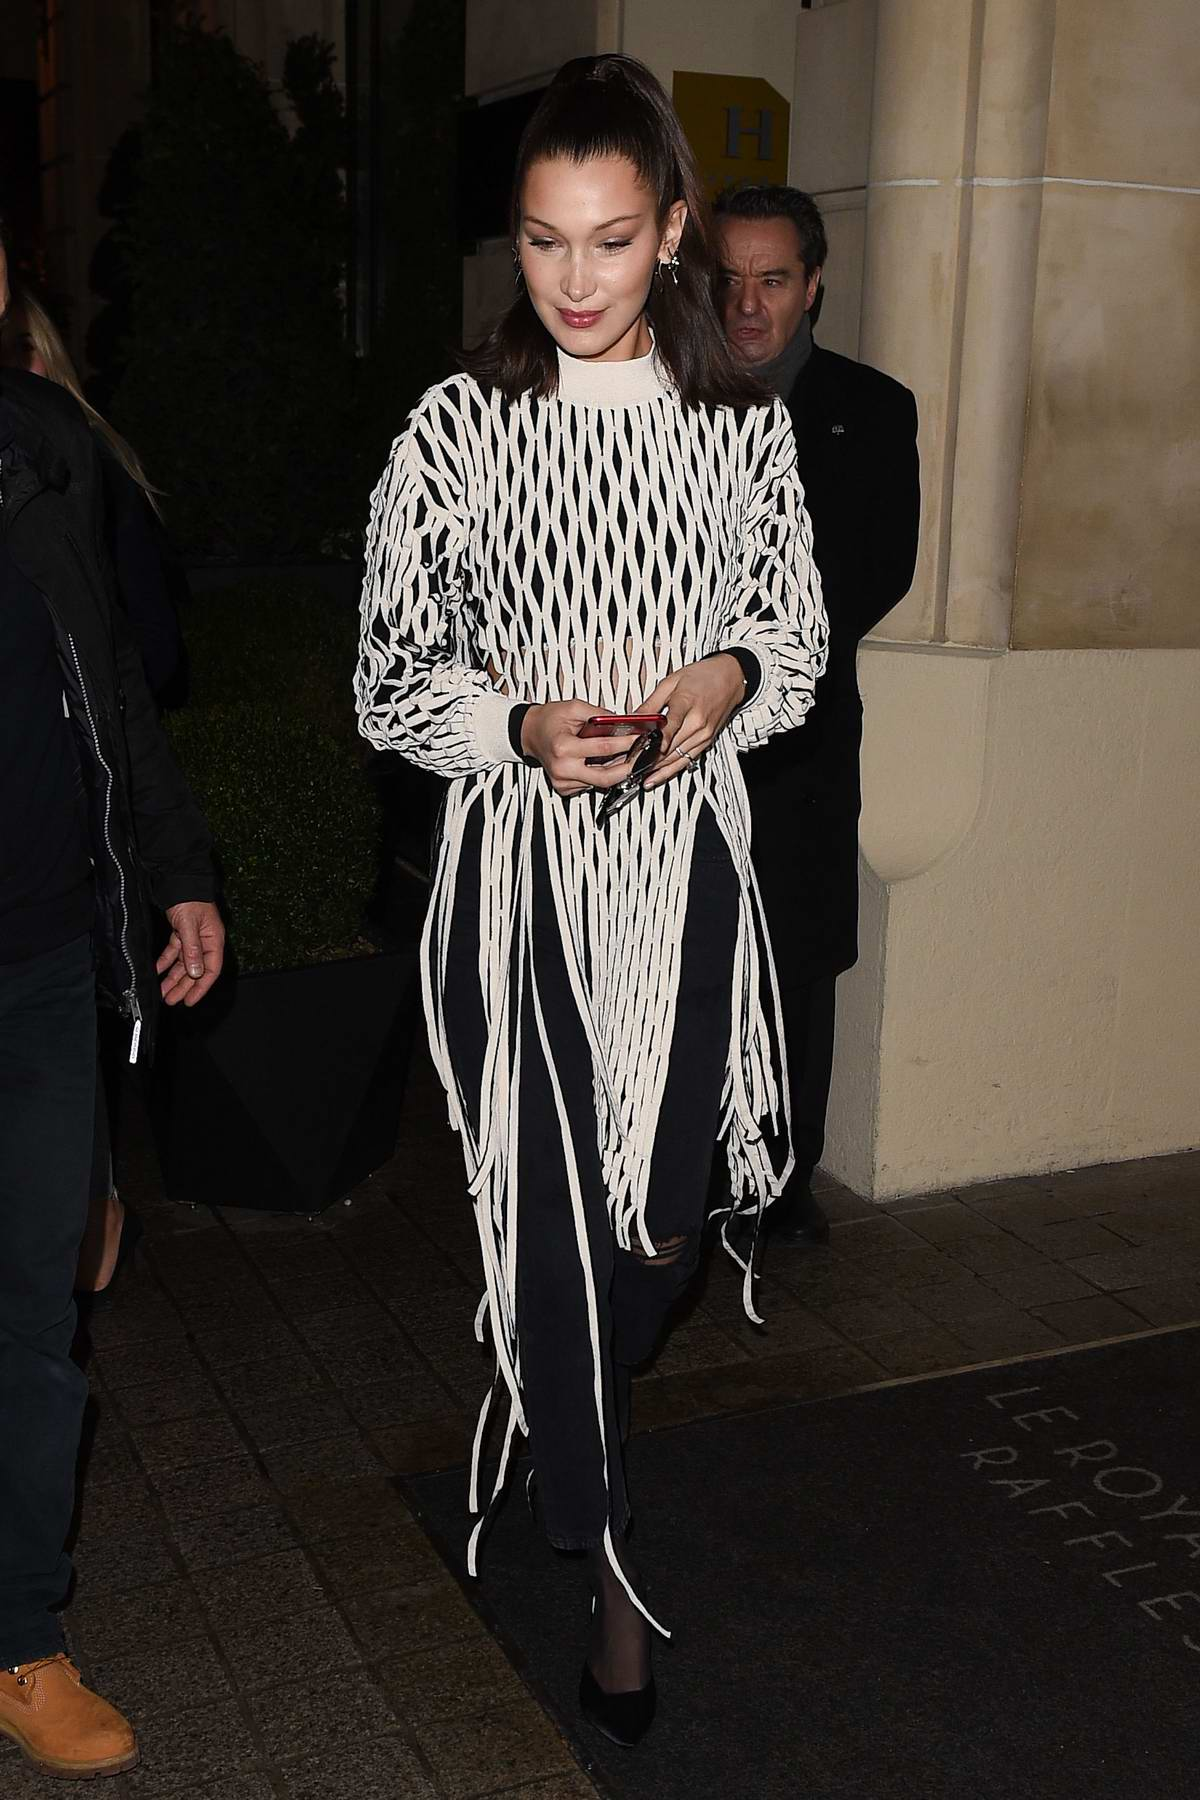 Bella Hadid is seen arriving at Hotel Costes in Paris, France